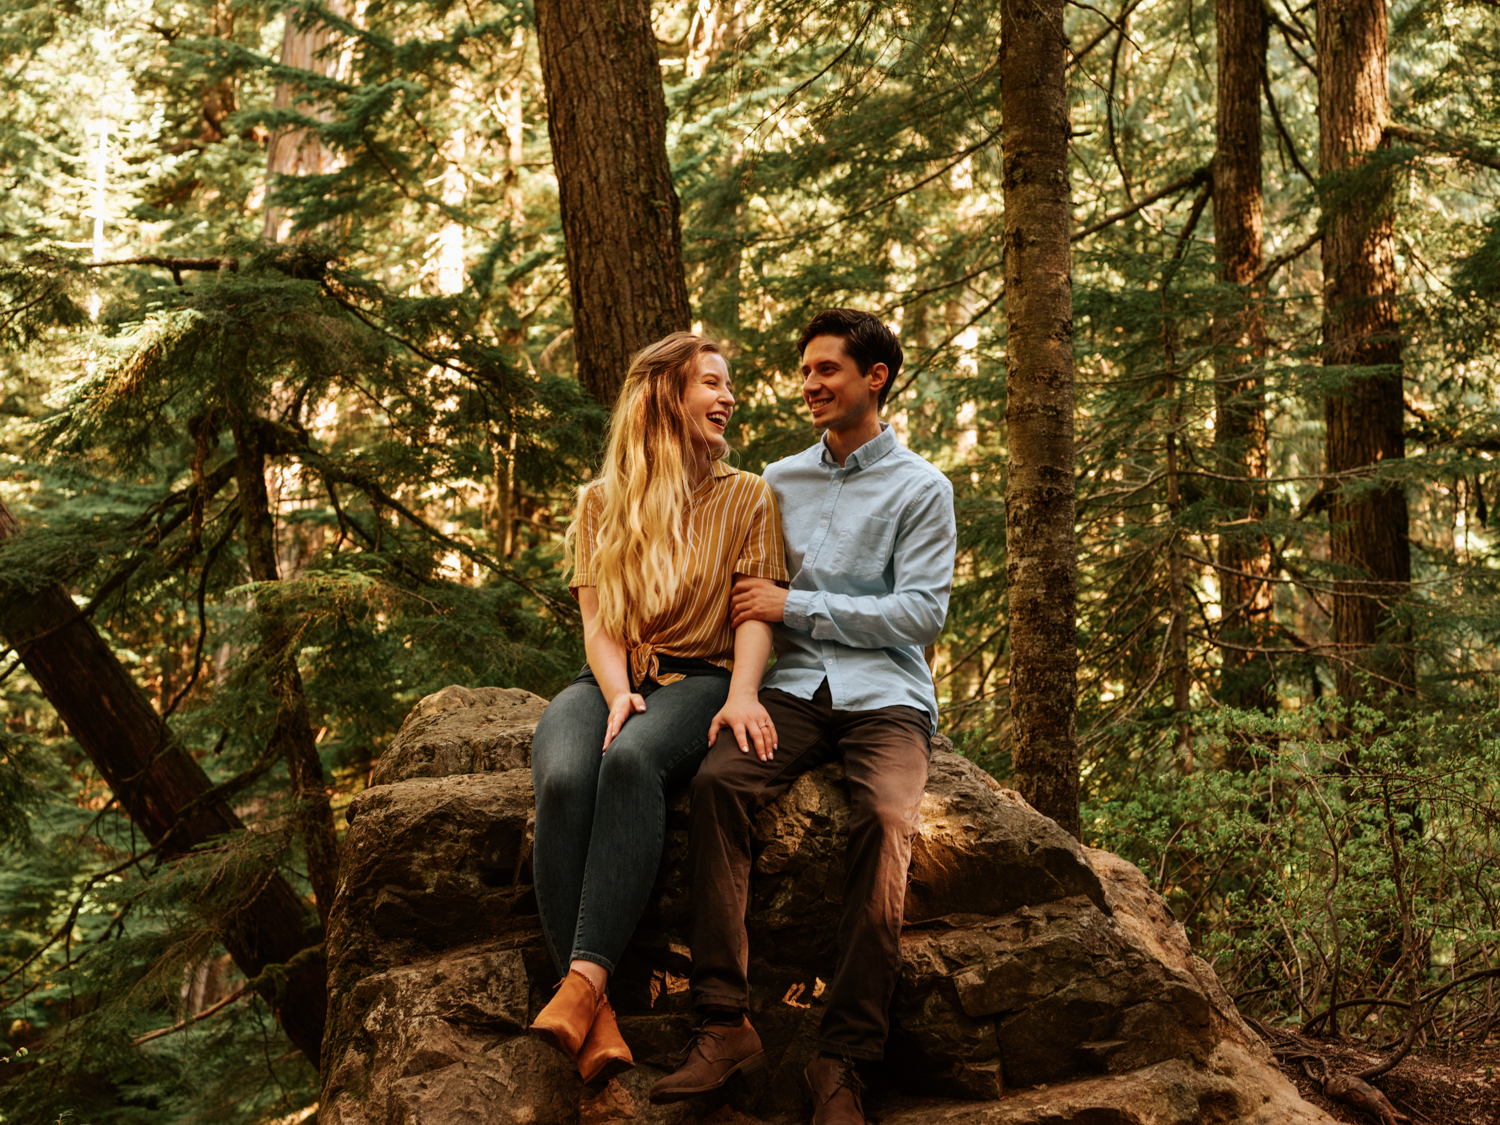 Franklin Falls Washington Engagement Session Stolen Glimpses Seattle Wedding Photographer 27.jpg